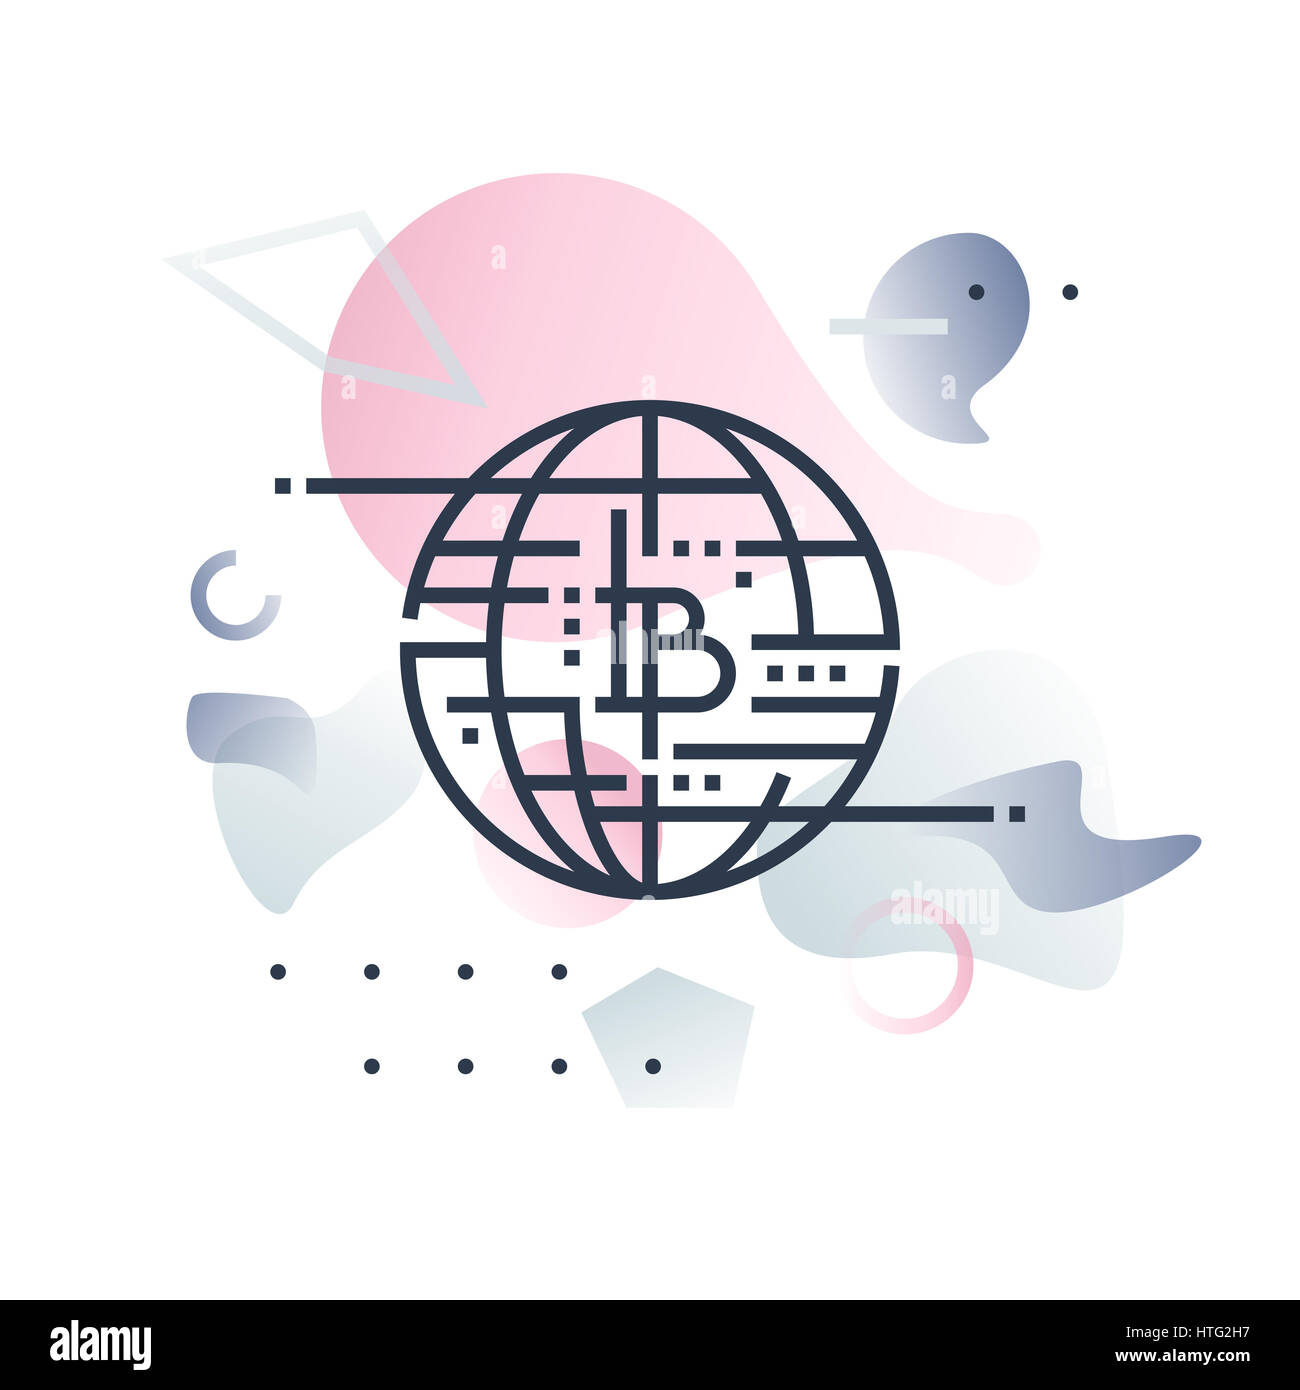 Future money and global innovative monetary system. Abstract illustration concept. - Stock Image